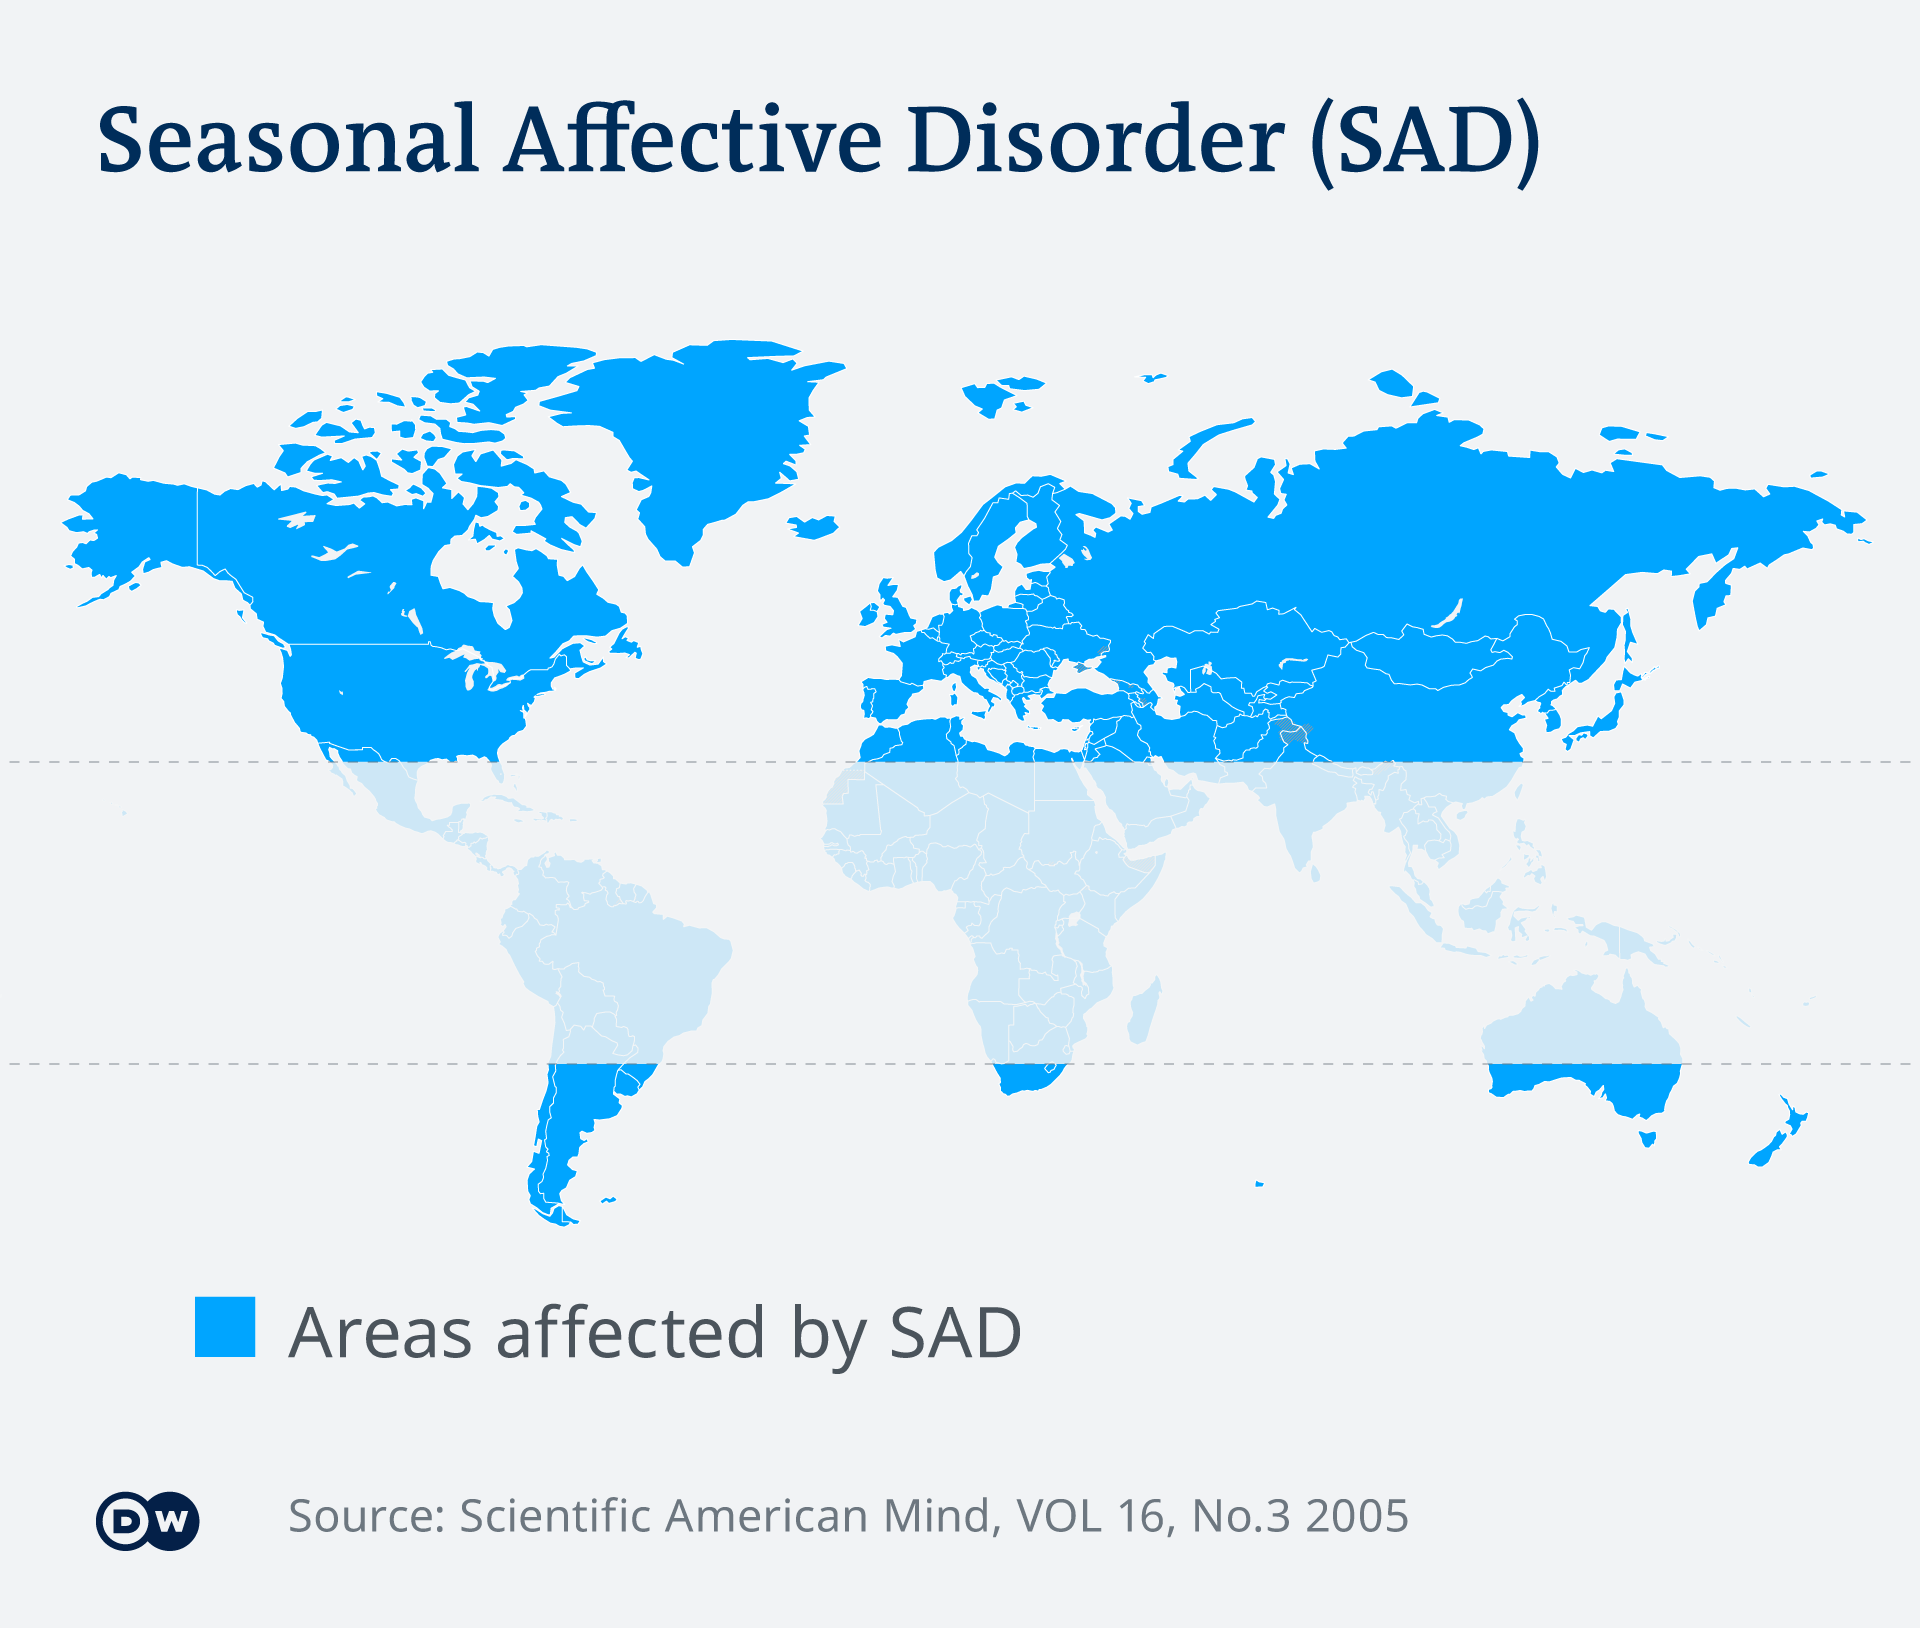 World map showing countries with seasonal affective disorder